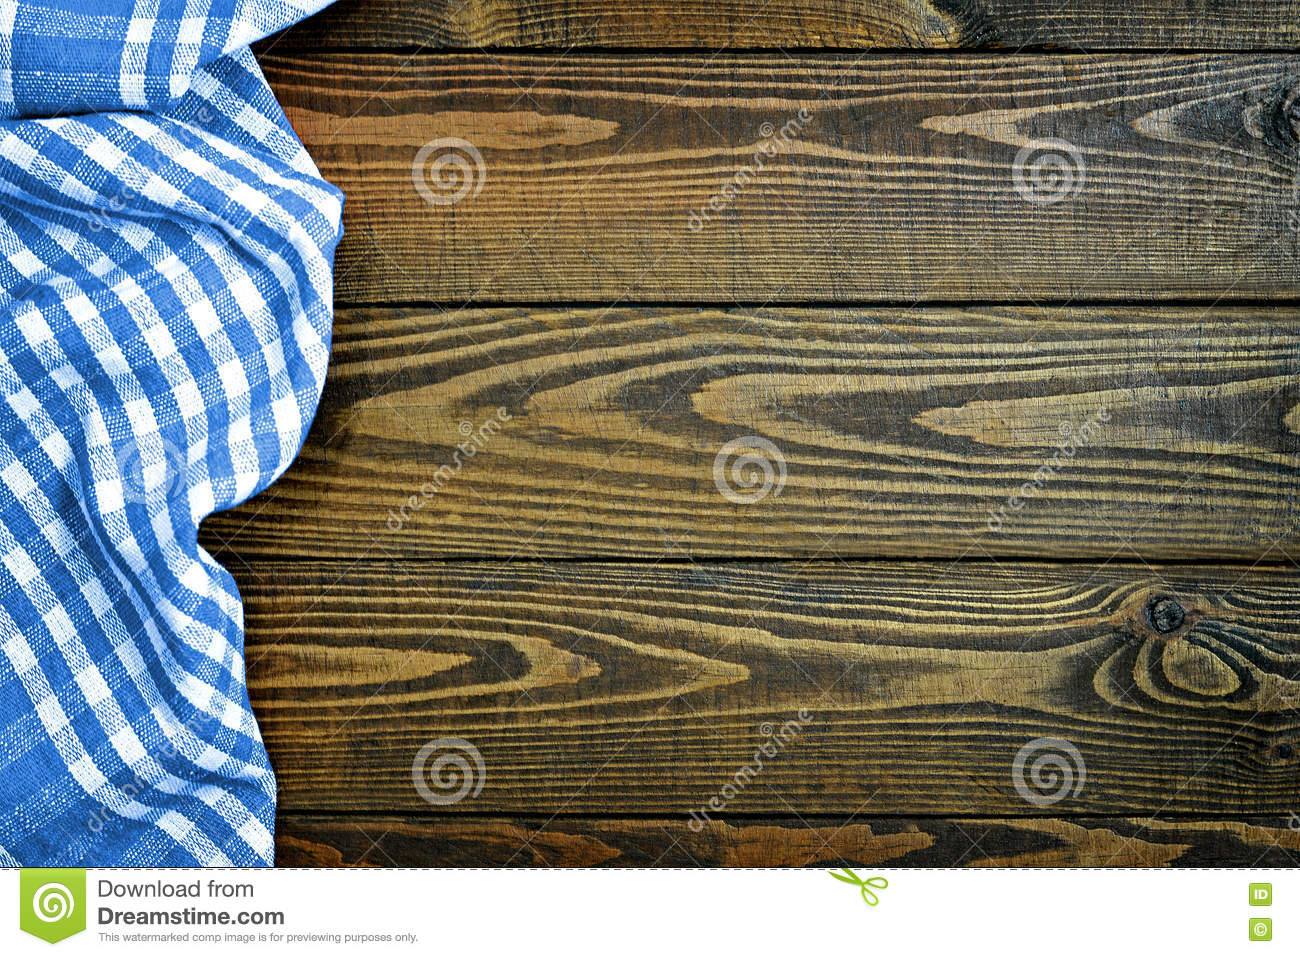 Picnic Table Background picnic table cloth on wooden background stock photo - image: 81738517